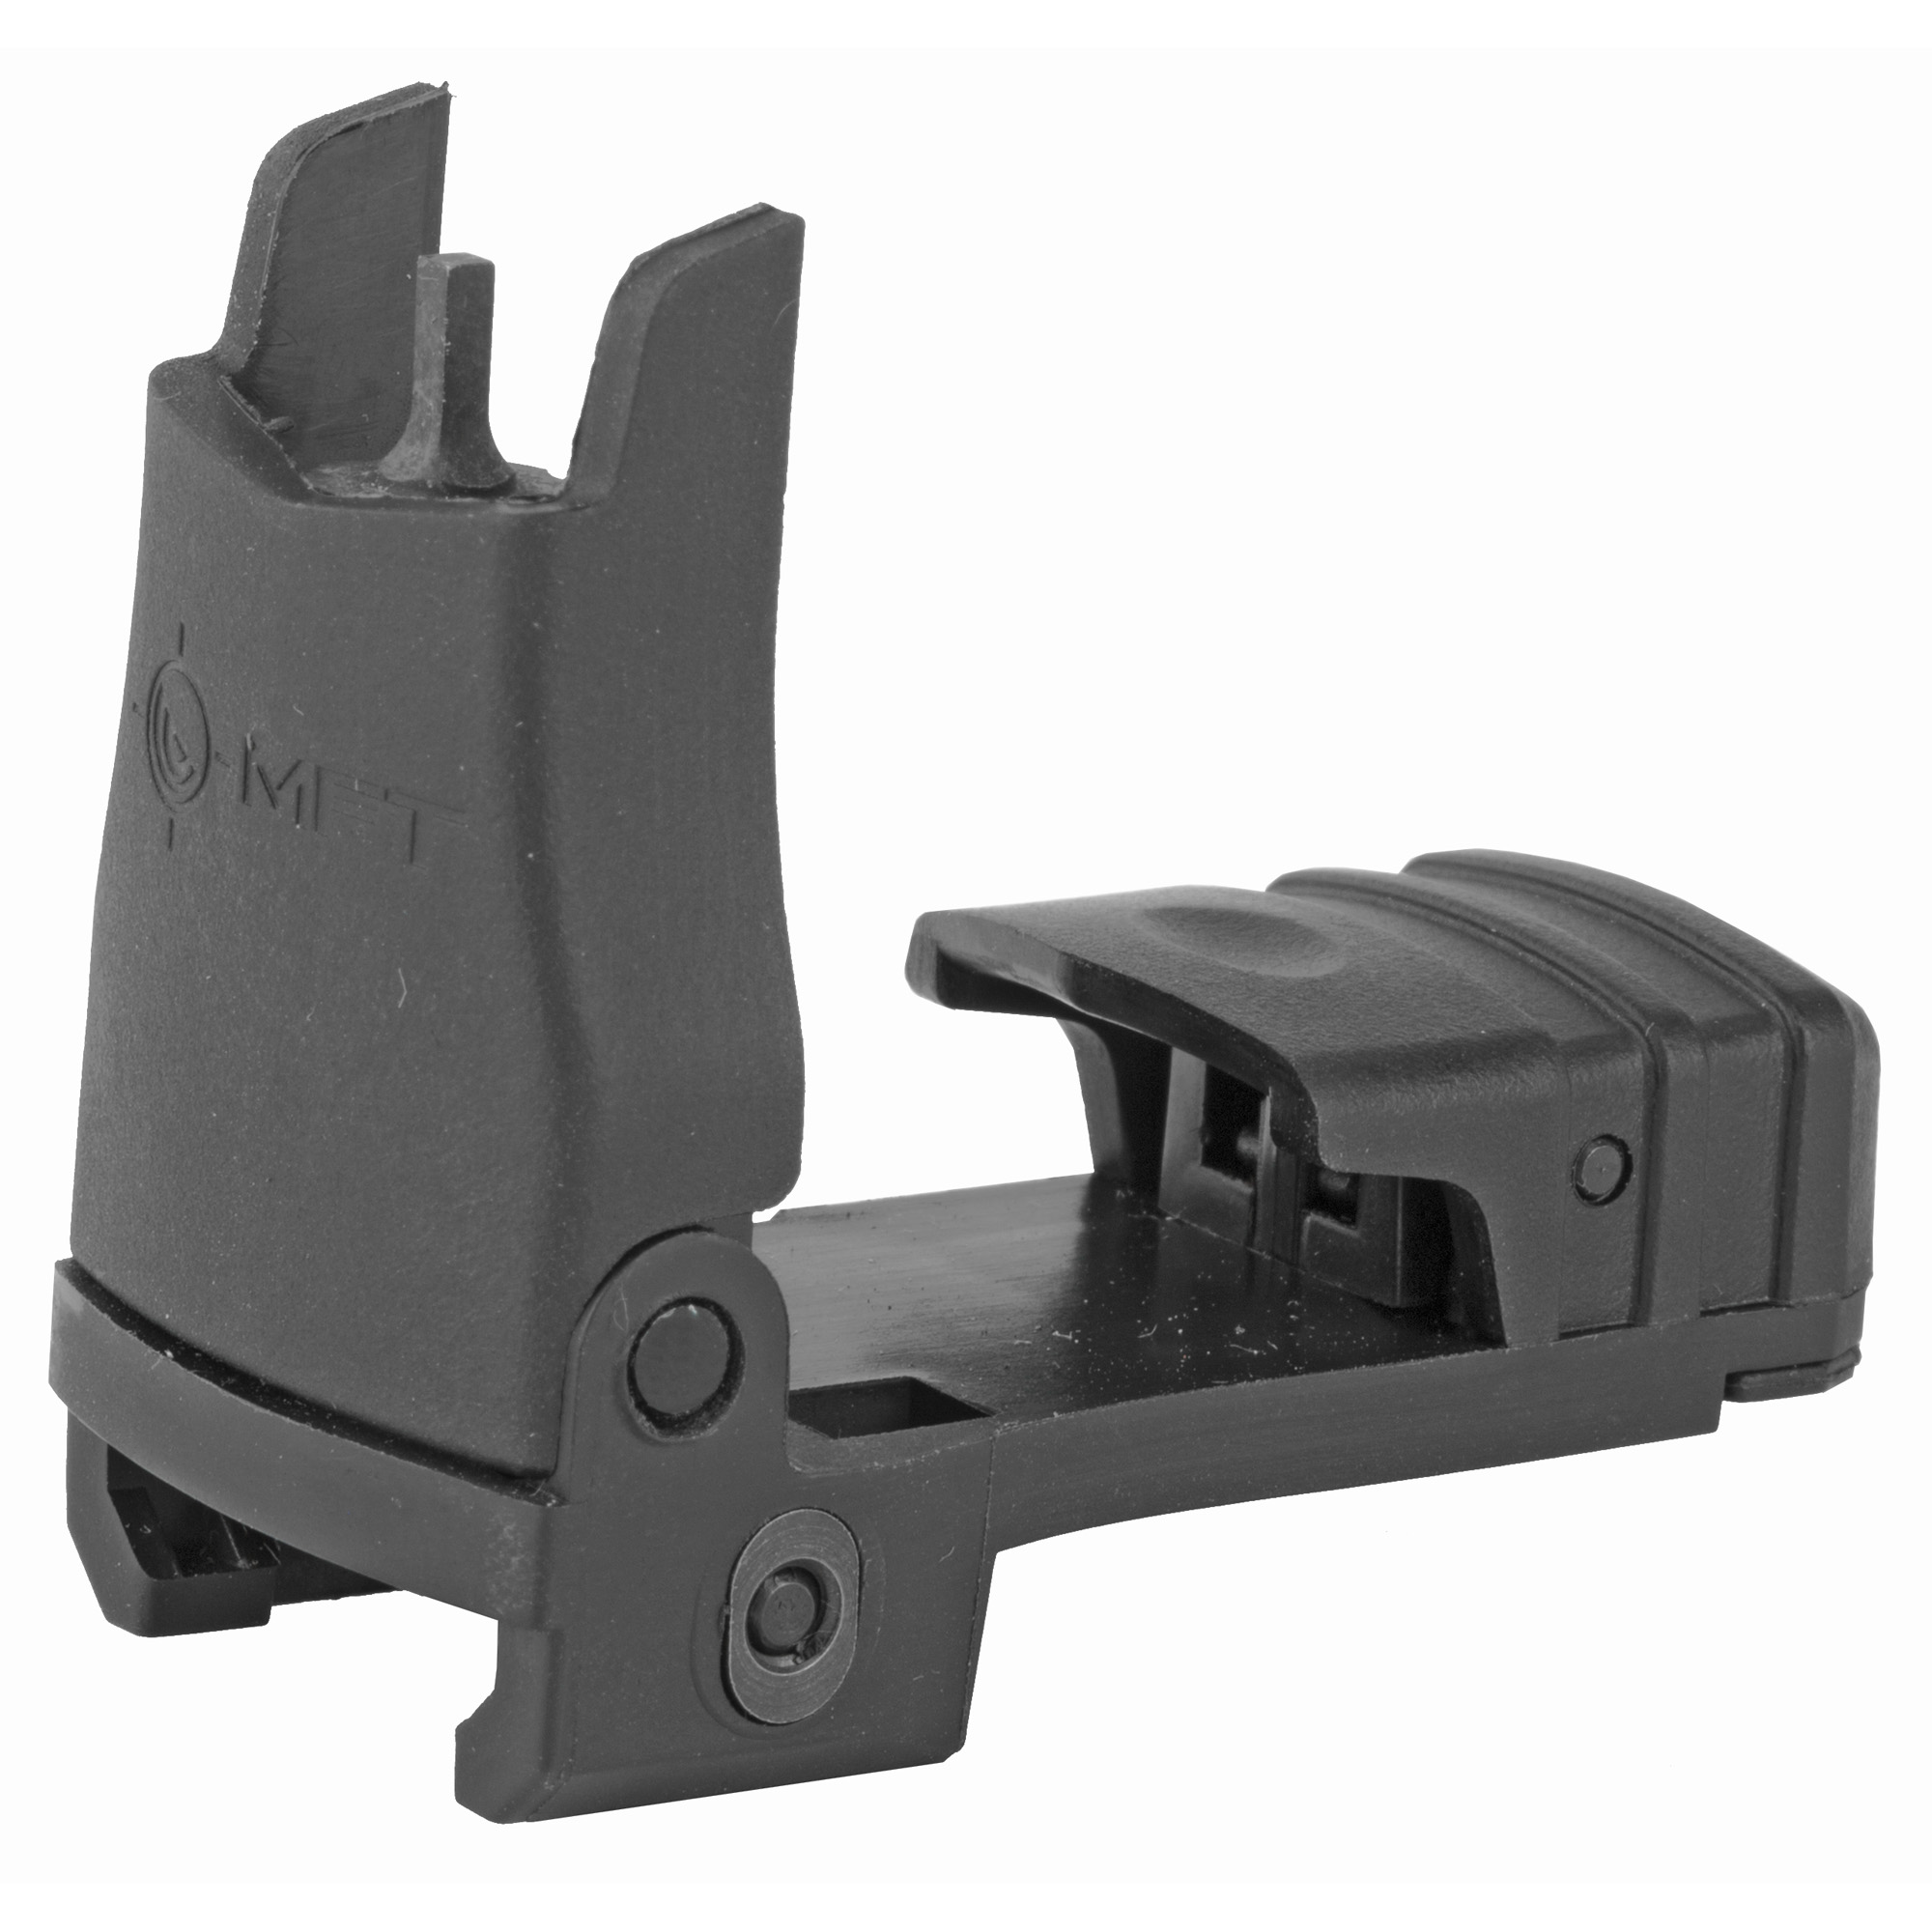 """This backup sight from Mission First Tactical mounts onto a Mil-Std 1913 Picatinny rail and accepts any standard front sight post. A standard sight tool is required to adjust"""" with each click equaling 1/4 MOA. The sight folds to the rear"""" the correct direction in case the rifle is dropped. When folded the sight post is shrouded and protected from dust and debris. The sight has a slim profile"""" allowing it to sit below most optics."""